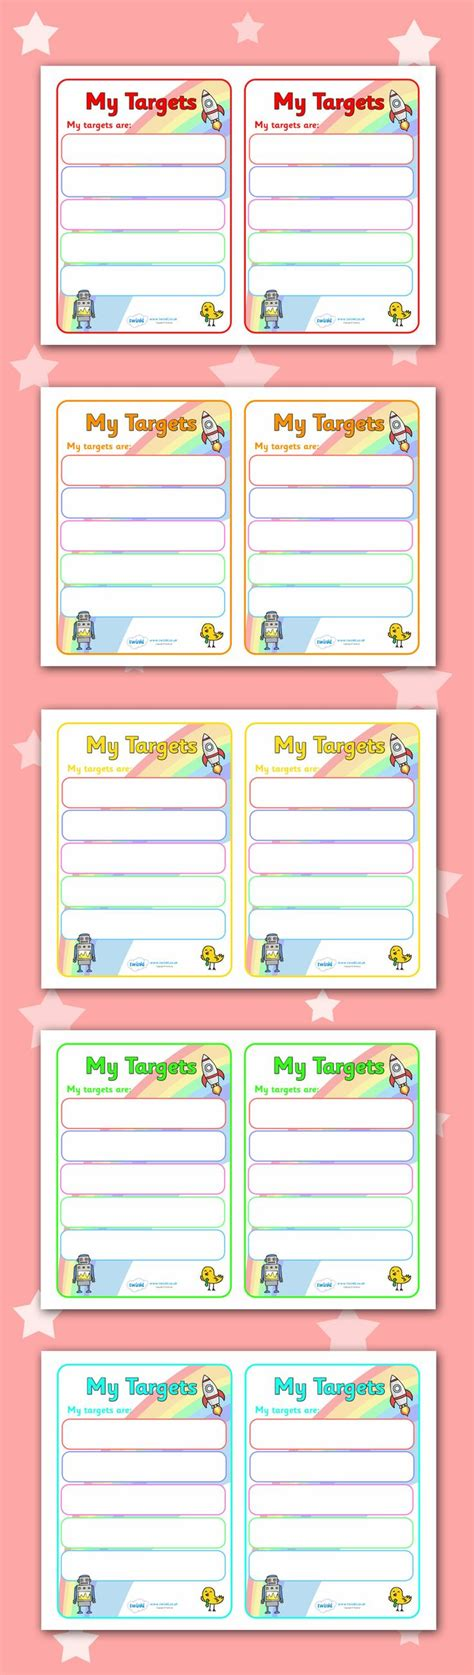 free printable learning targets twinkl resources gt gt editable target learning objective